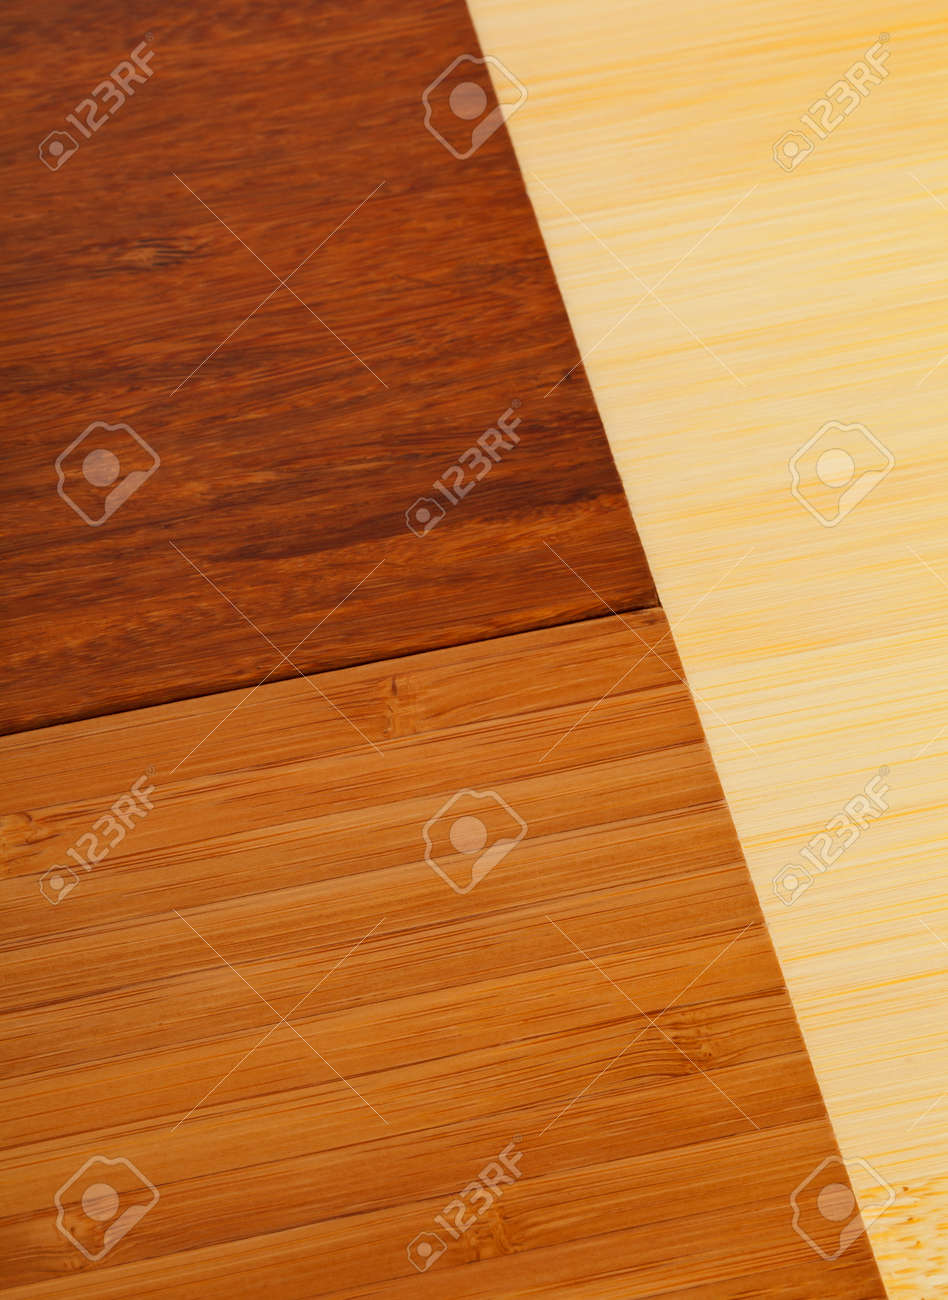 Different Light And Dark Colored Bamboo Laminate Flooring Samples Stock Photo